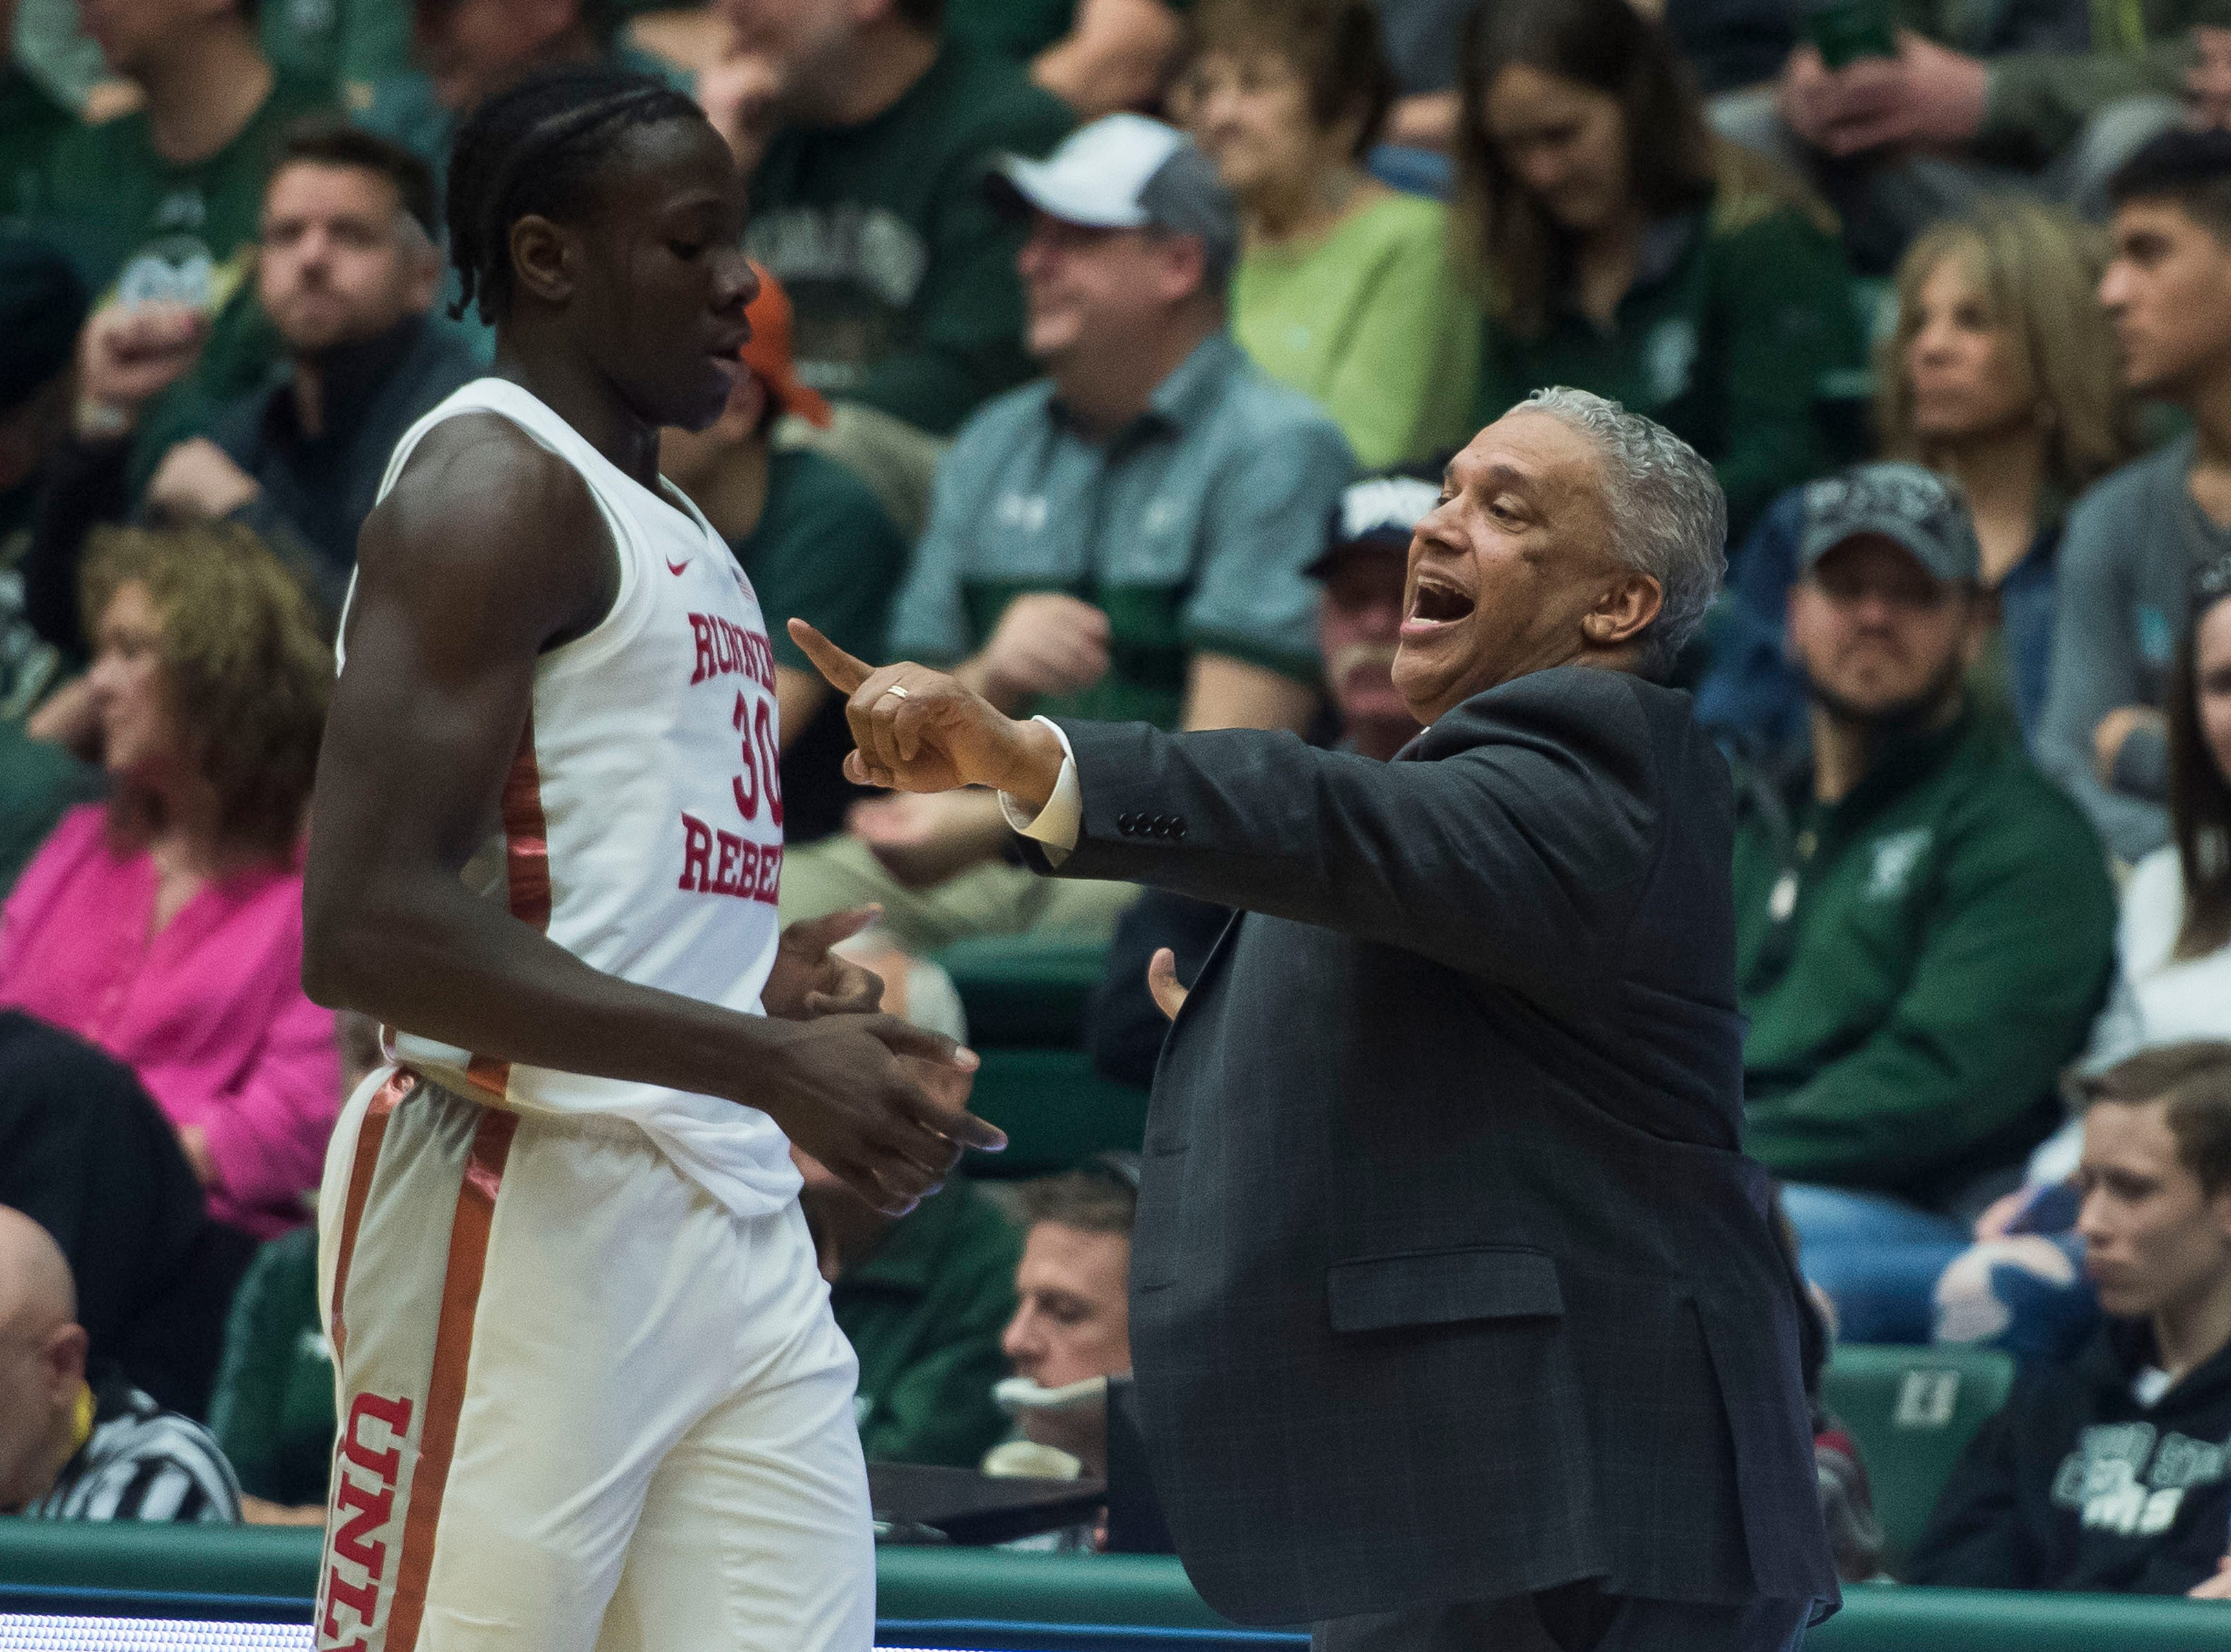 University of Nevada Las Vegas head coach Marvin Menzies talks to his players during a game against Colorado State University on Saturday, March 9, 2019, at Moby Arena in Fort Collins, Colo.